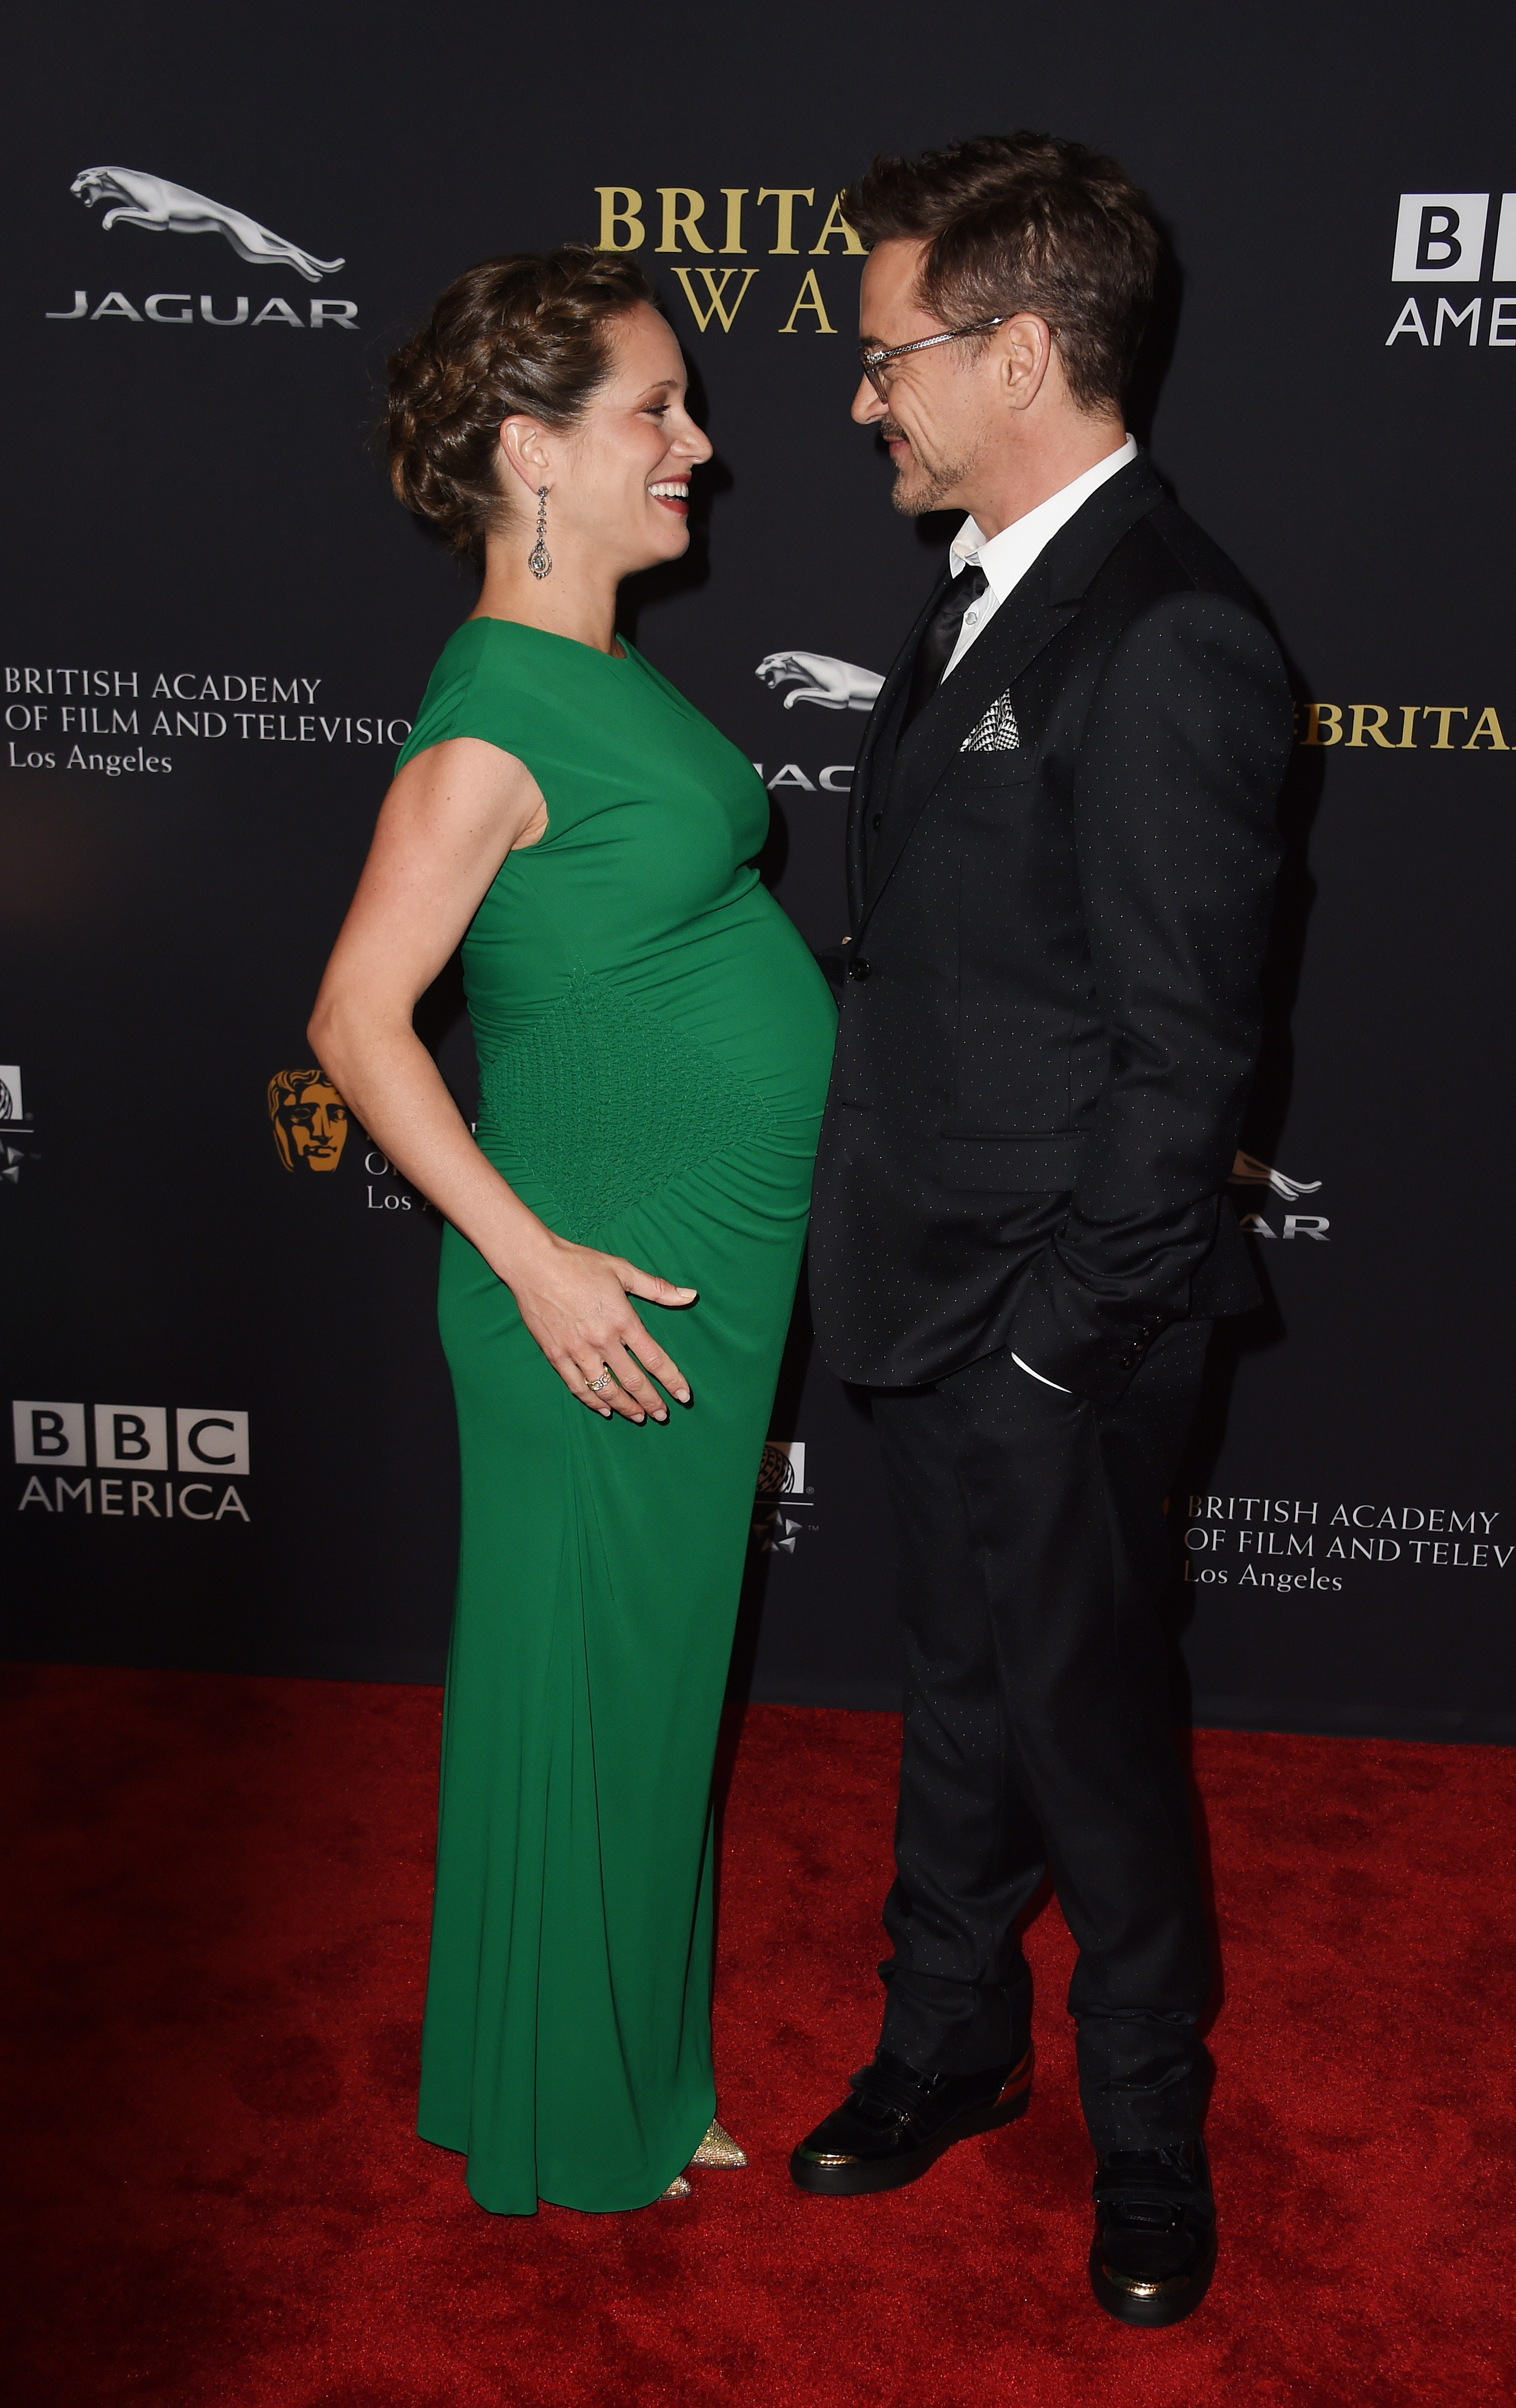 US-ENTERTAINMENT-BAFTA LOS ANGELES JAGUAR BRITANNIA AWARDS-ARRIV